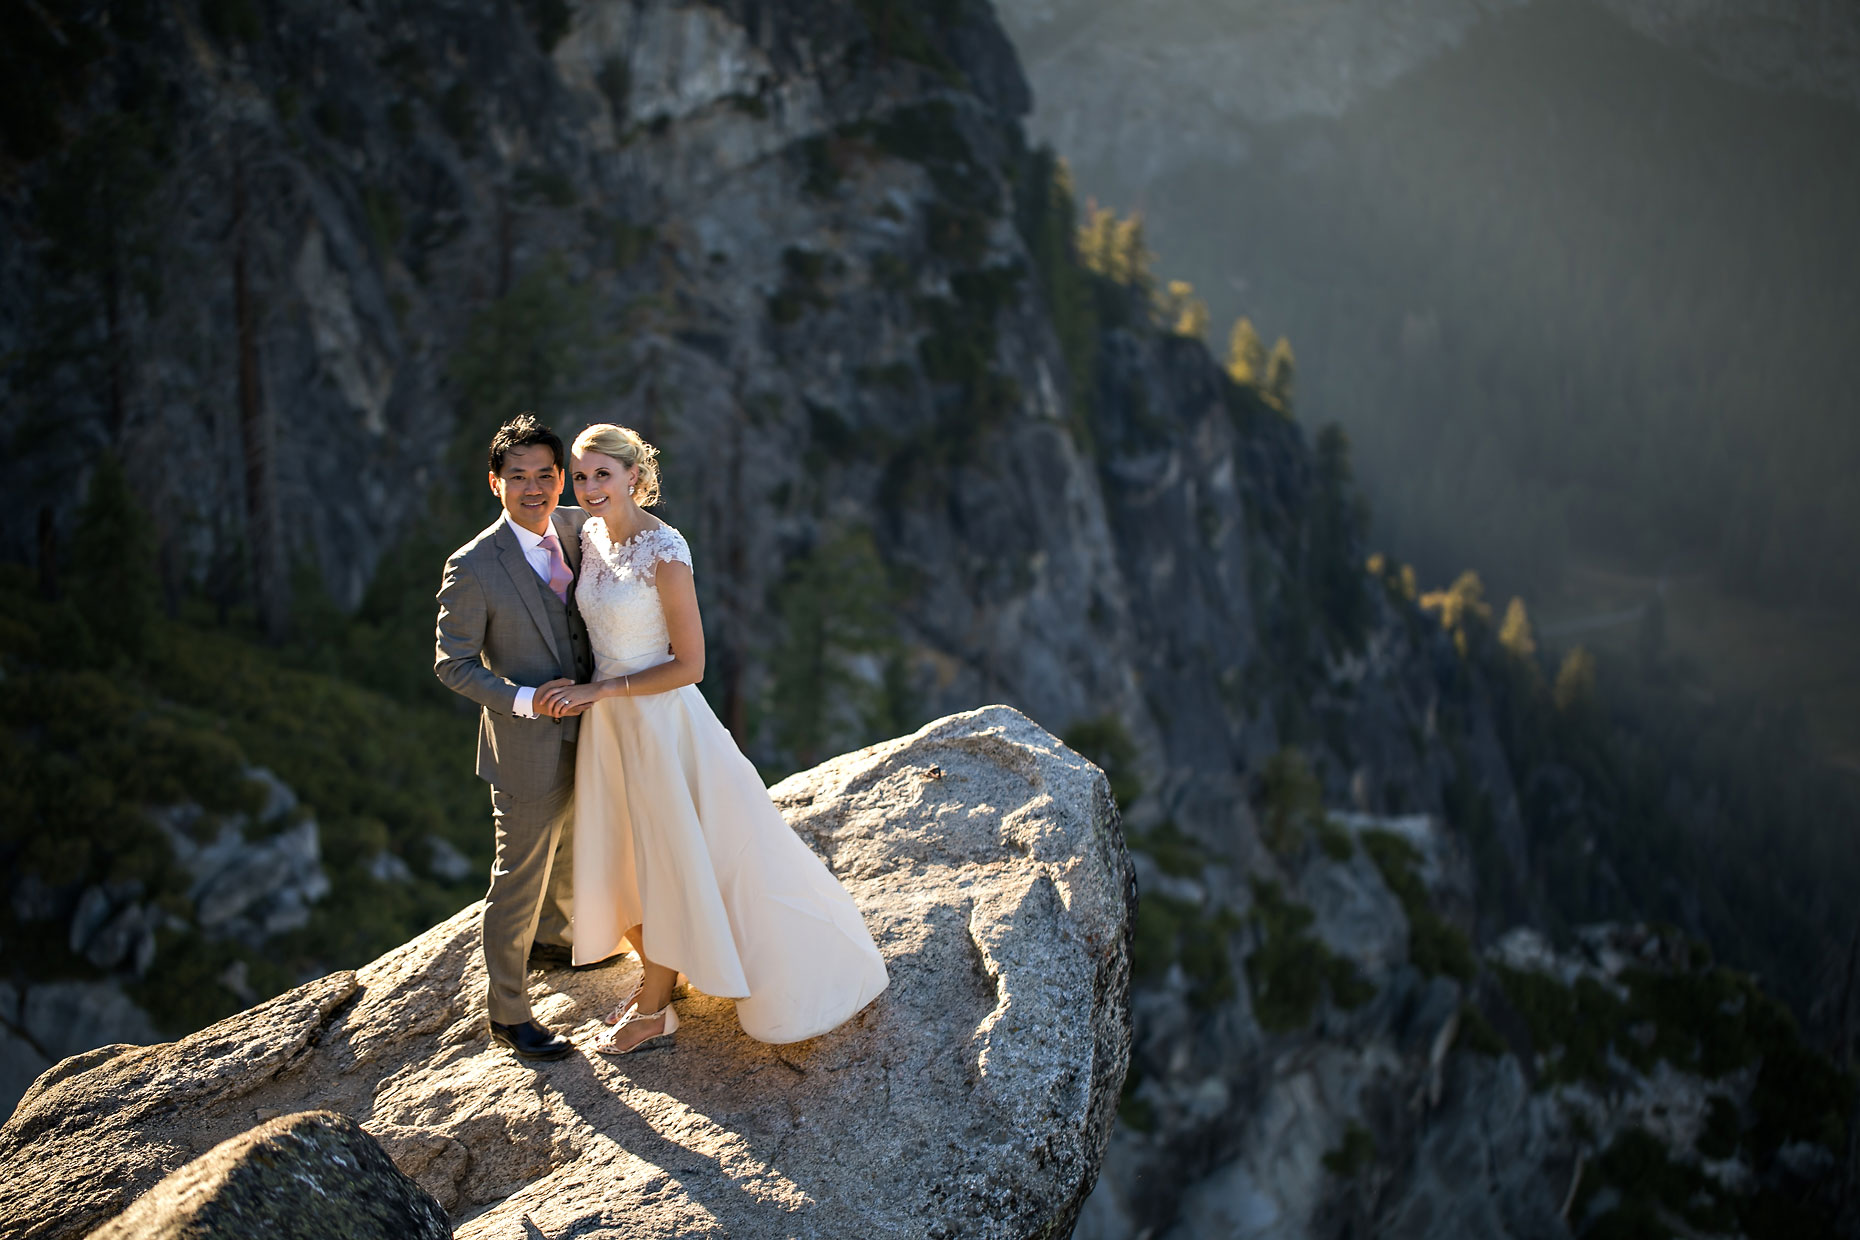 Glacier Point intimate wedding photography in Yosemite.